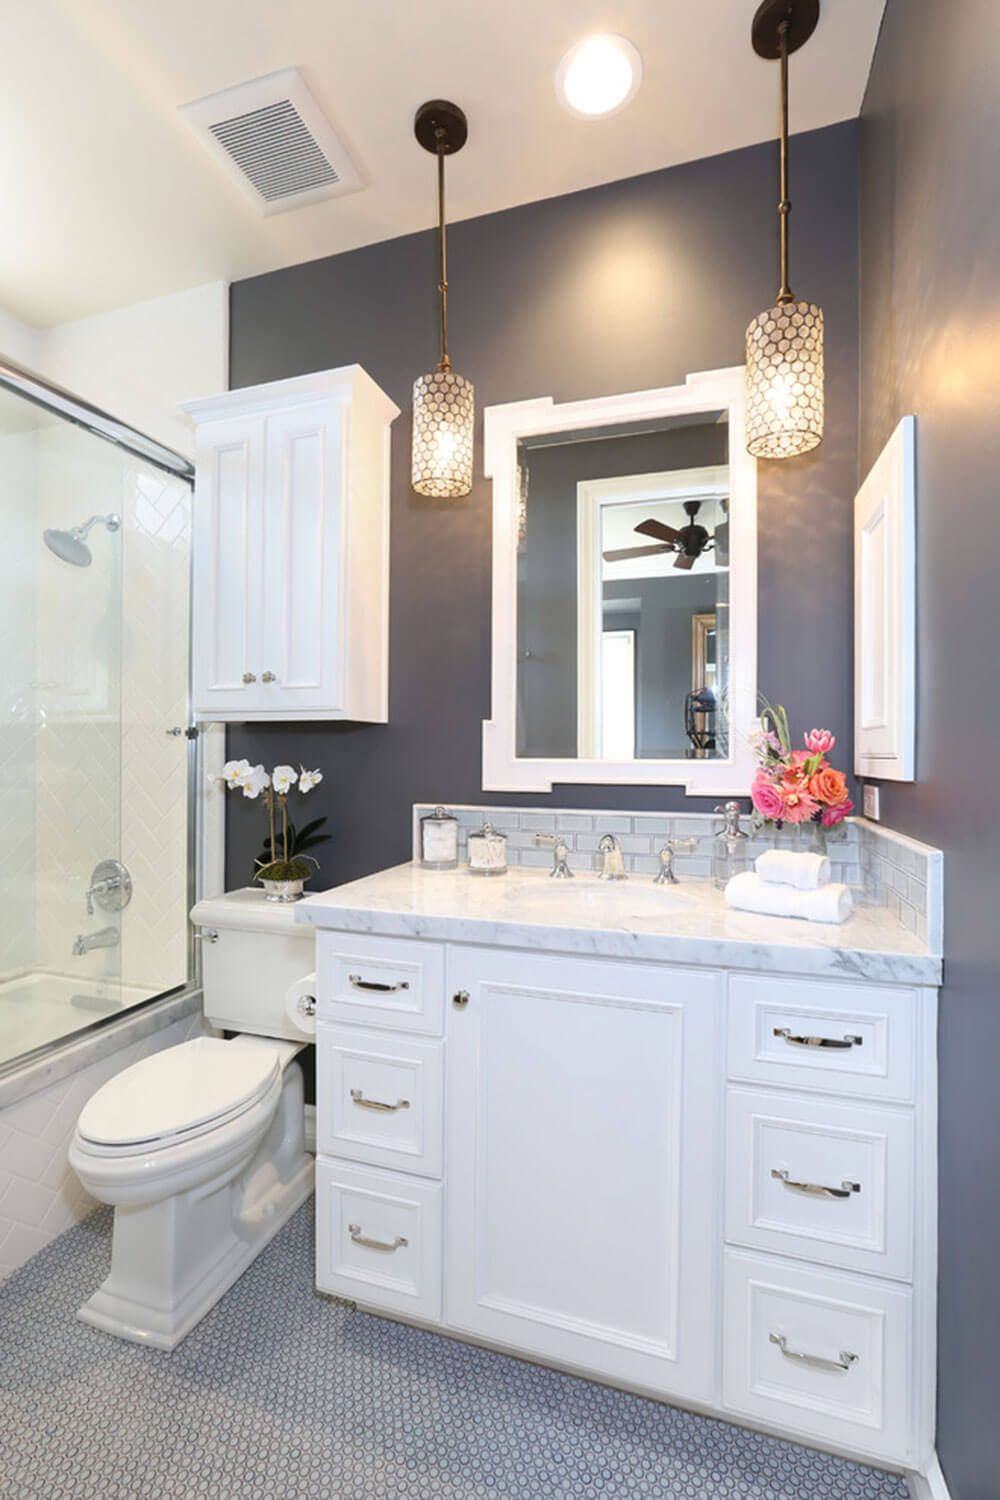 Best Kitchen Gallery: 32 Small Bathroom Design Ideas For Every Taste Dark Grey Dark And of Bathroom Design Photos  on rachelxblog.com